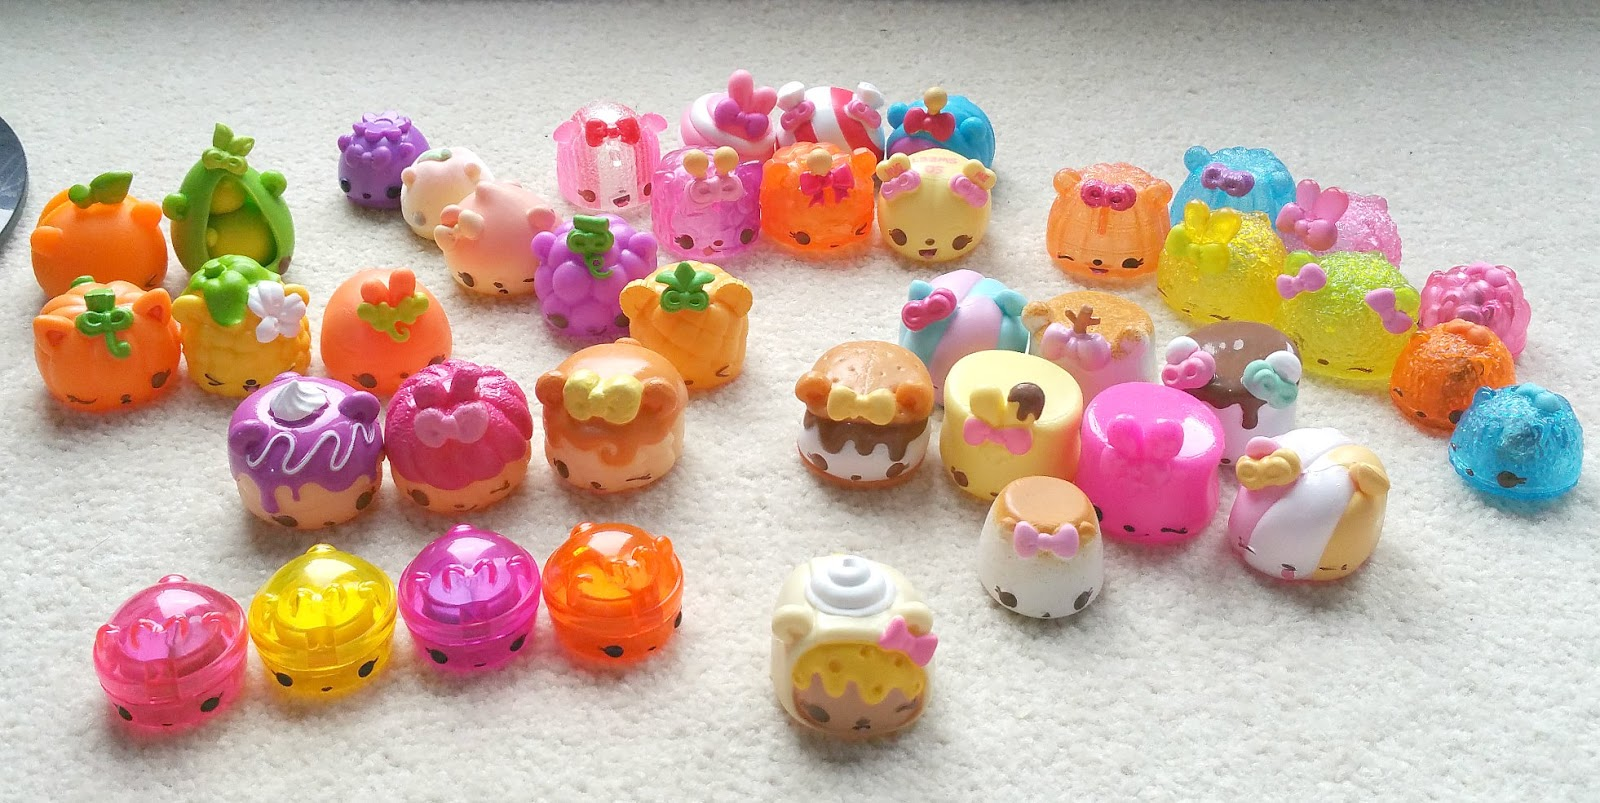 Num Noms series 3 collection, Num Noms Crazy Creation, Collectible scented toys